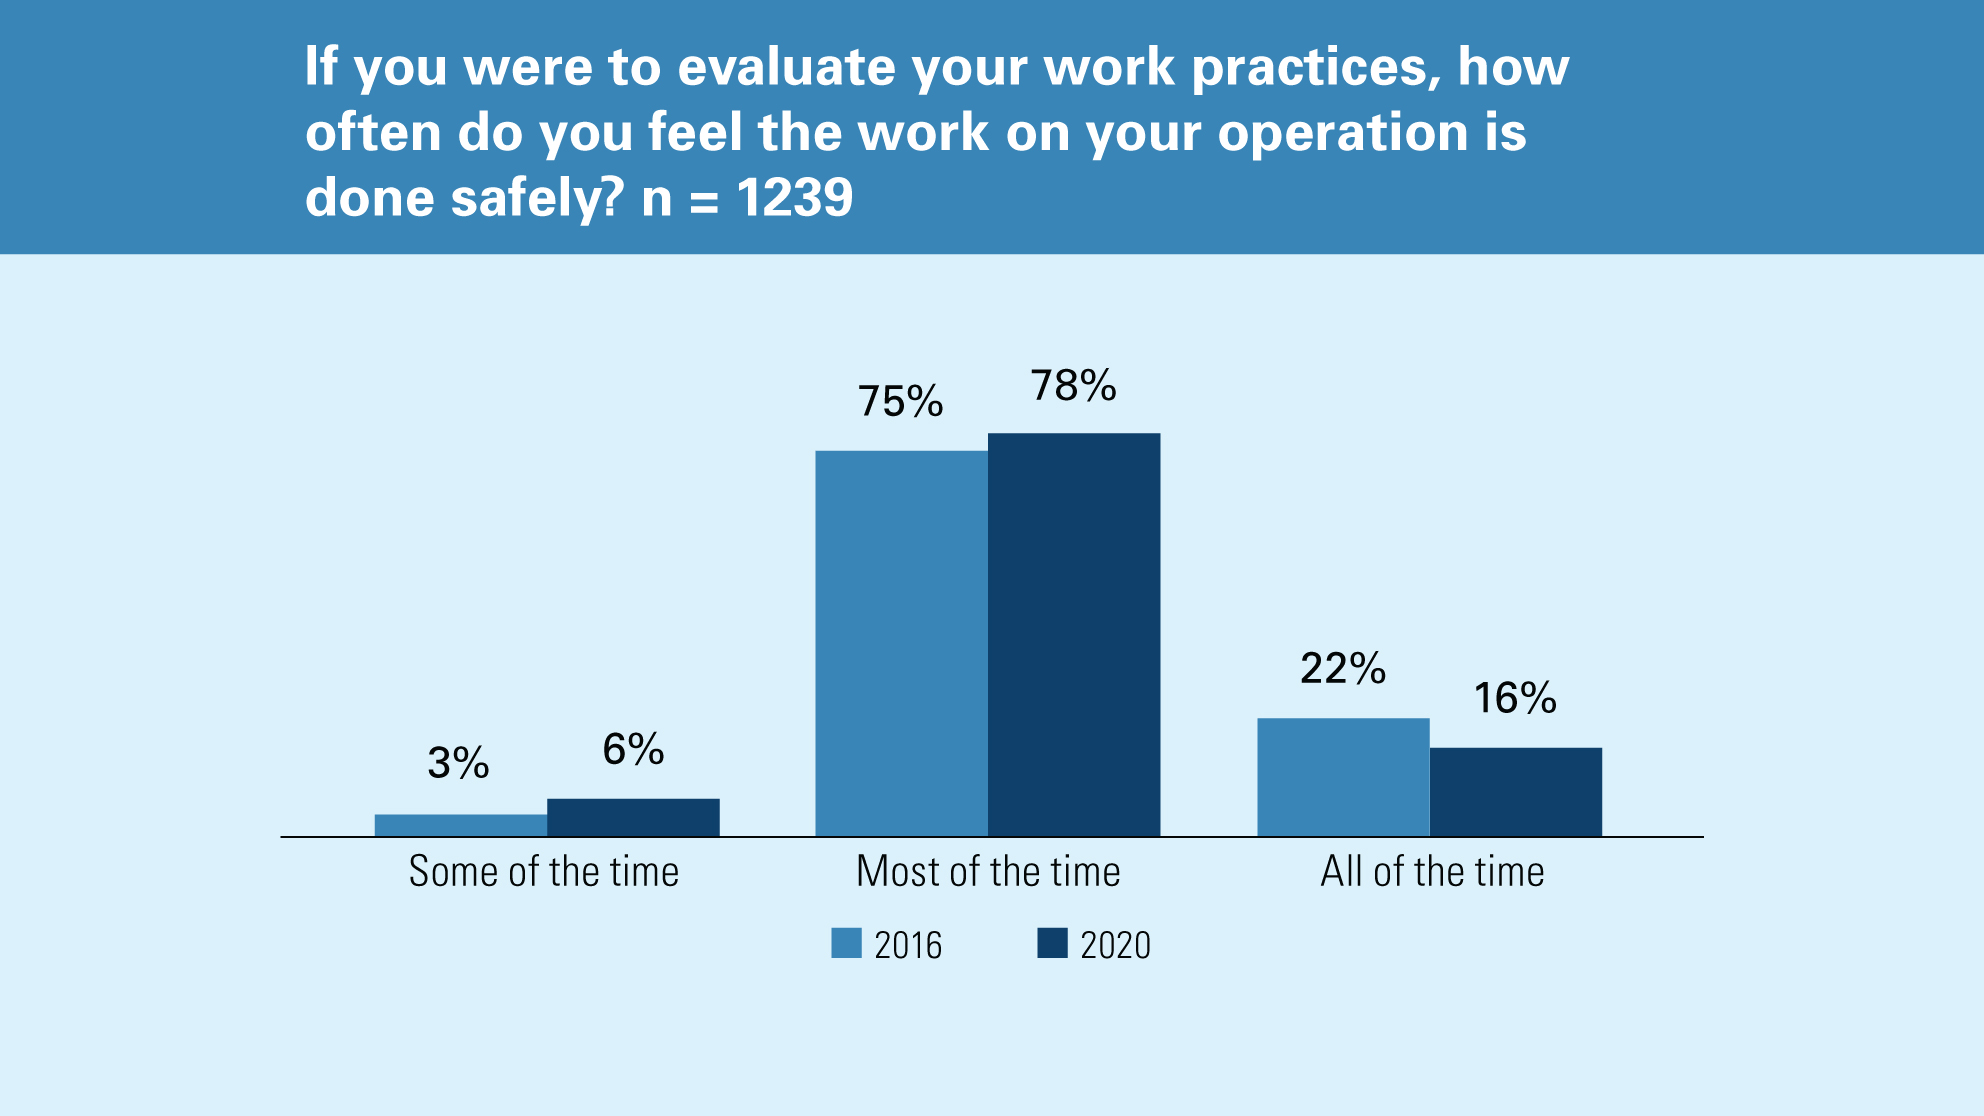 Chart showing frequency of work practices done safely (comparison between 2016 and 2020).